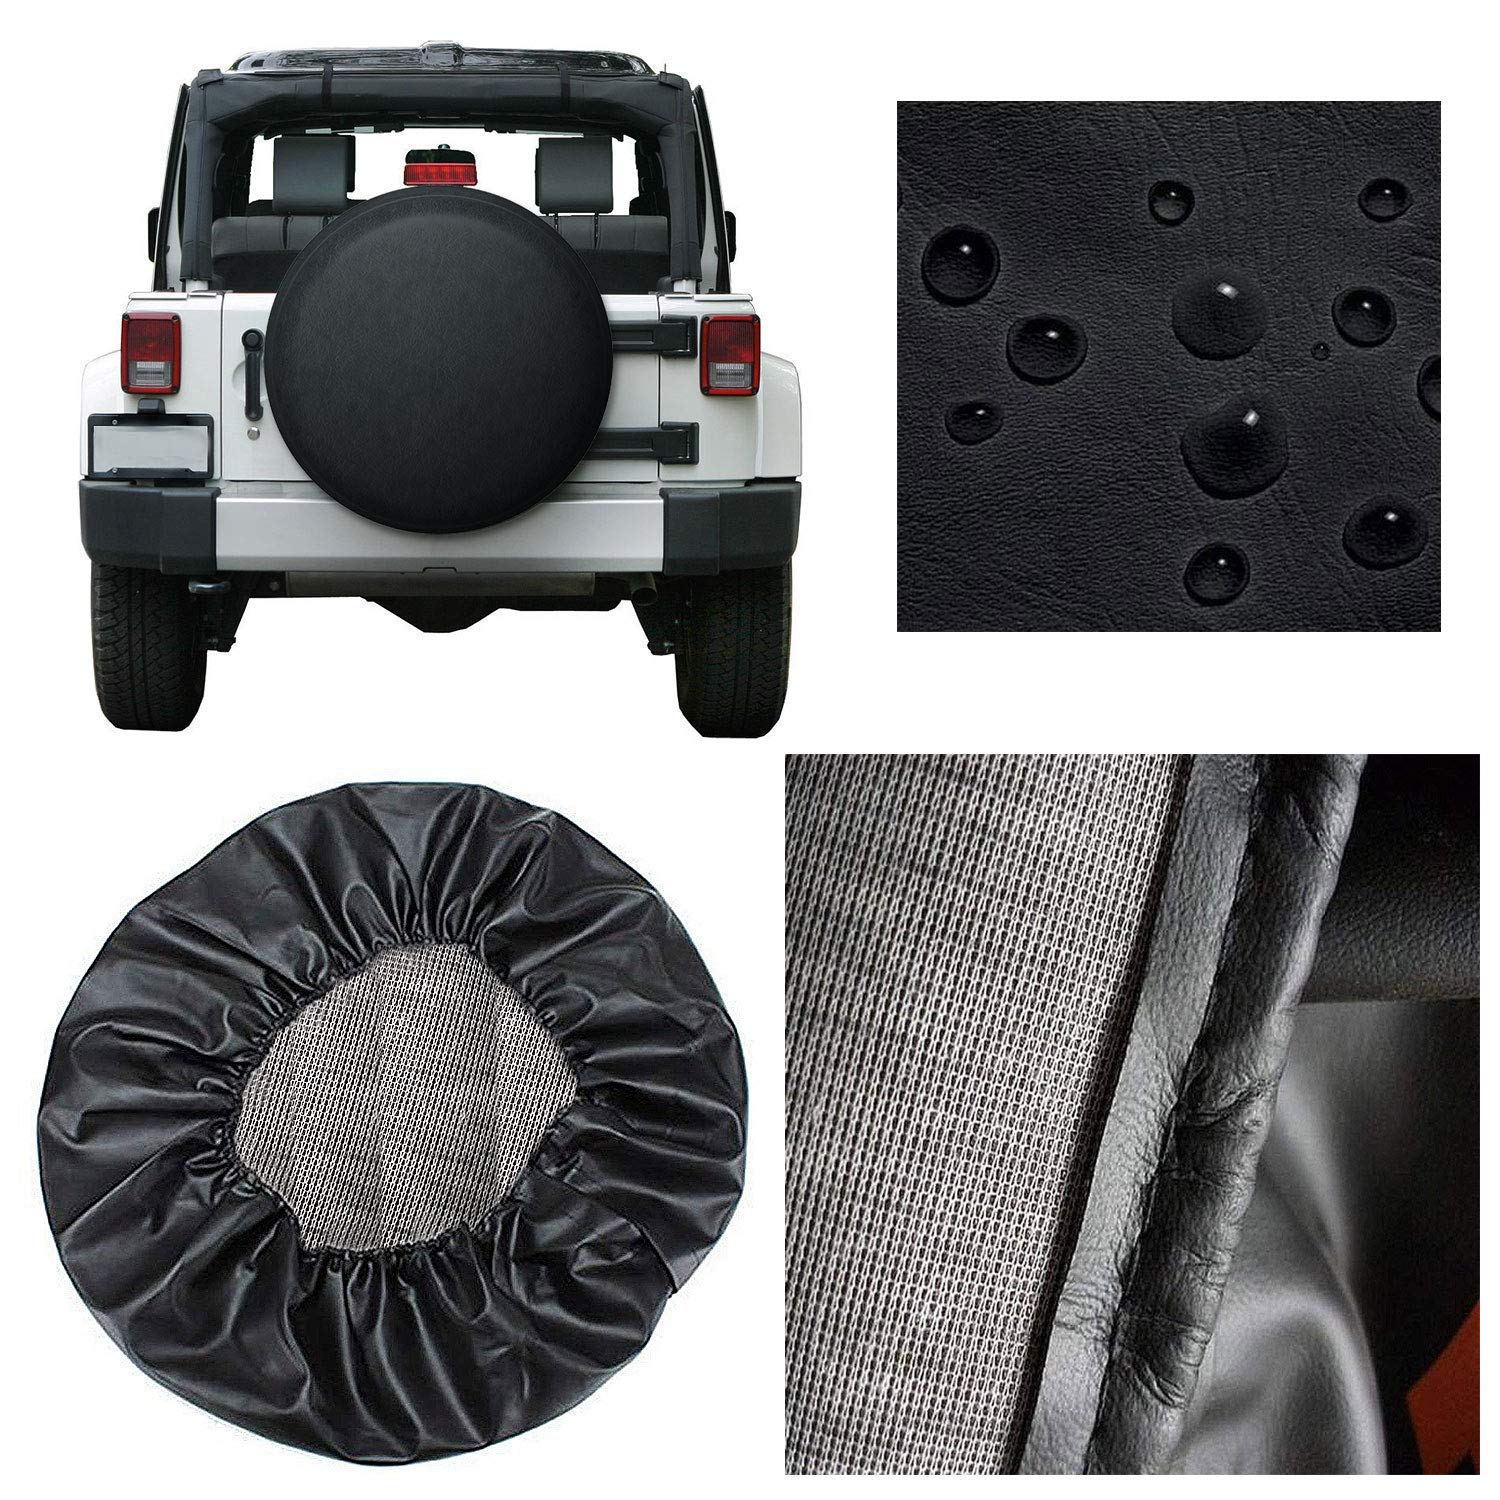 RV SUV Trailer Valleycomfy Waterproof Spare Tire Cover Protector- Universal Fit Tire Covers,Wheel Diameter 28-30,Suit for Jeep Truck and Many Vehicle Black, 15inch